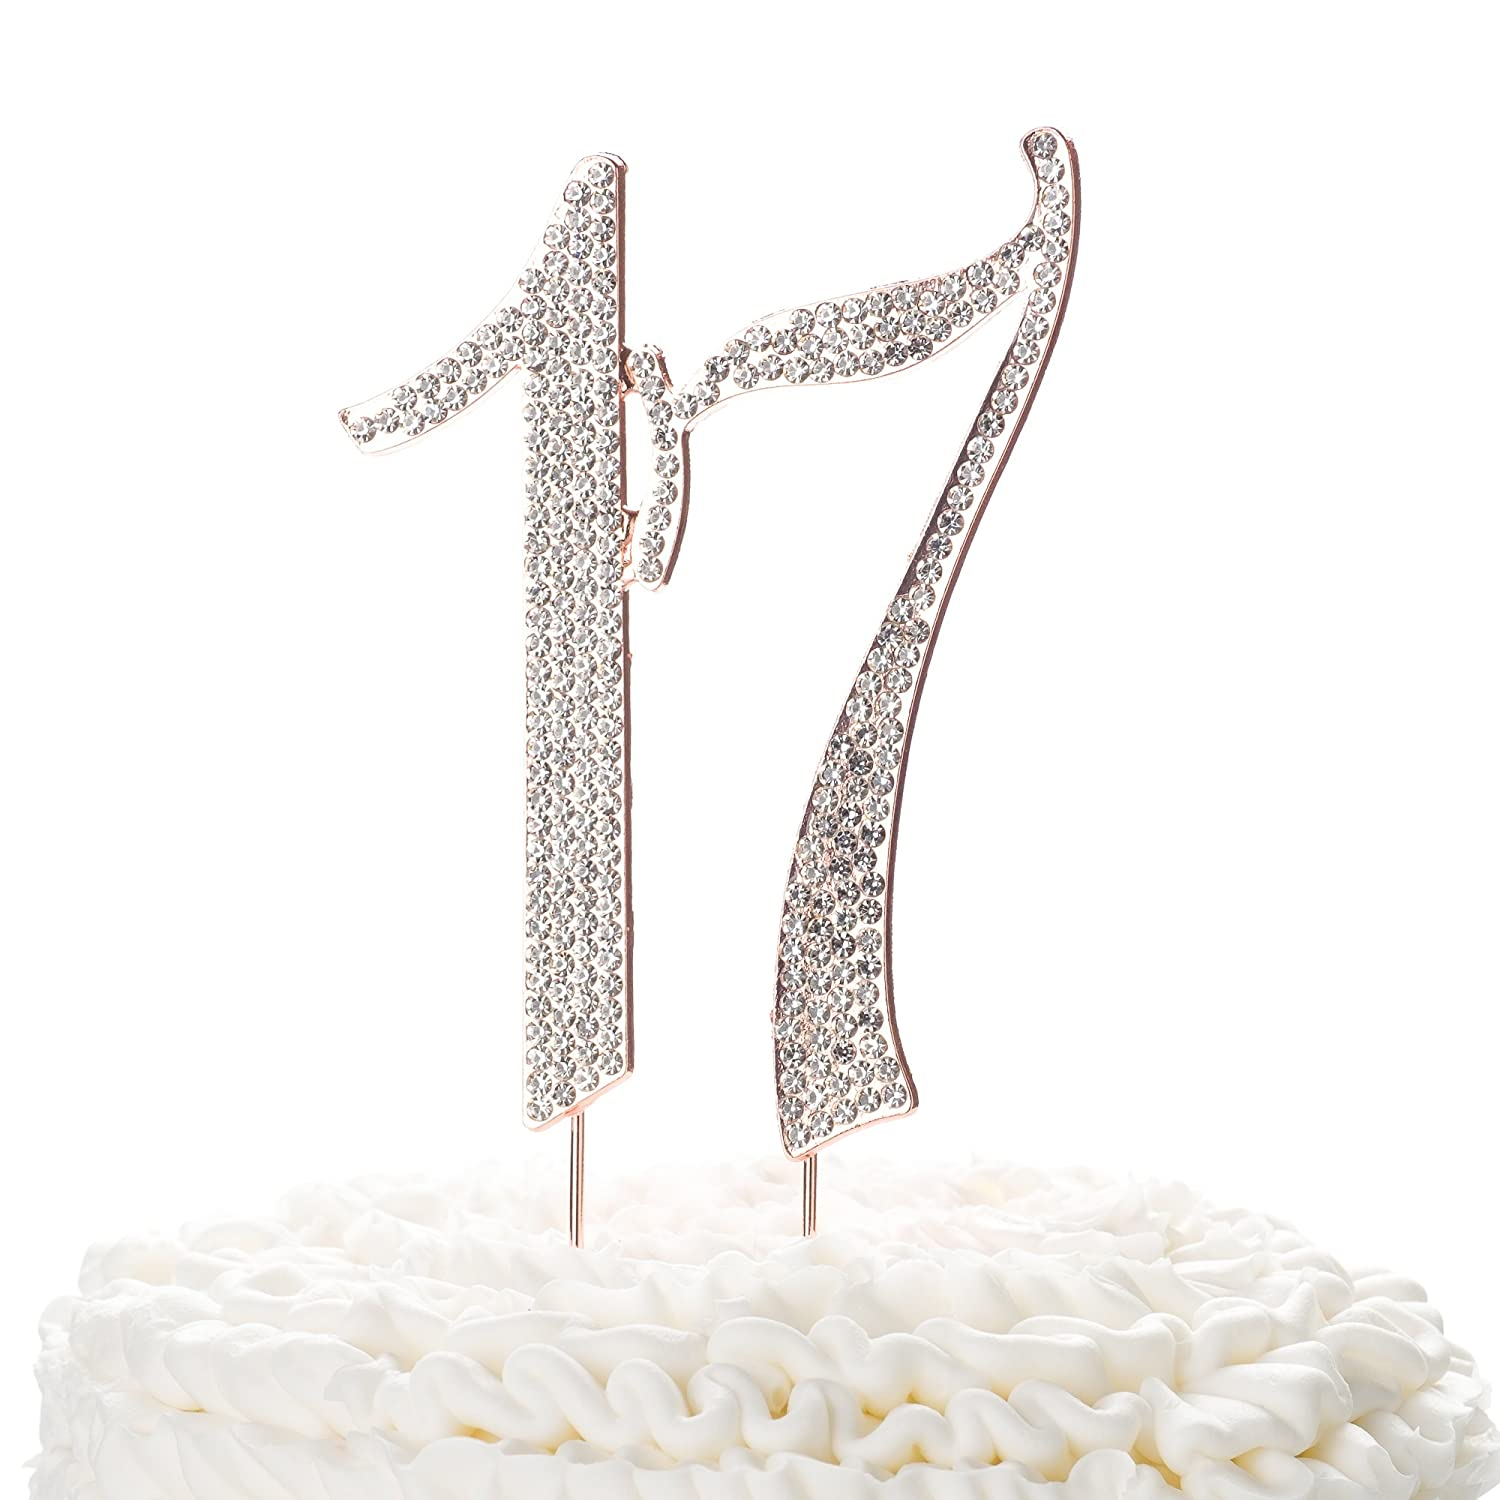 Ella Celebration 17 Cake Topper For 17th Birthday Rhinestone Number Decoration Party Supplies Rose Gold Amazon Grocery Gourmet Food